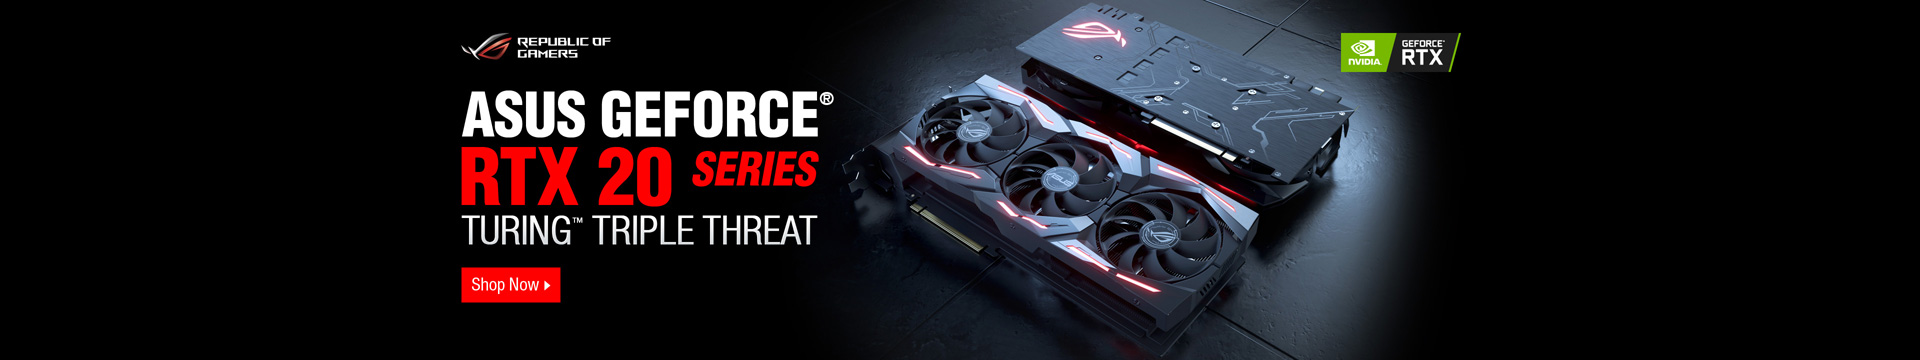 ASUS GEFORCE RTX20 SERIES